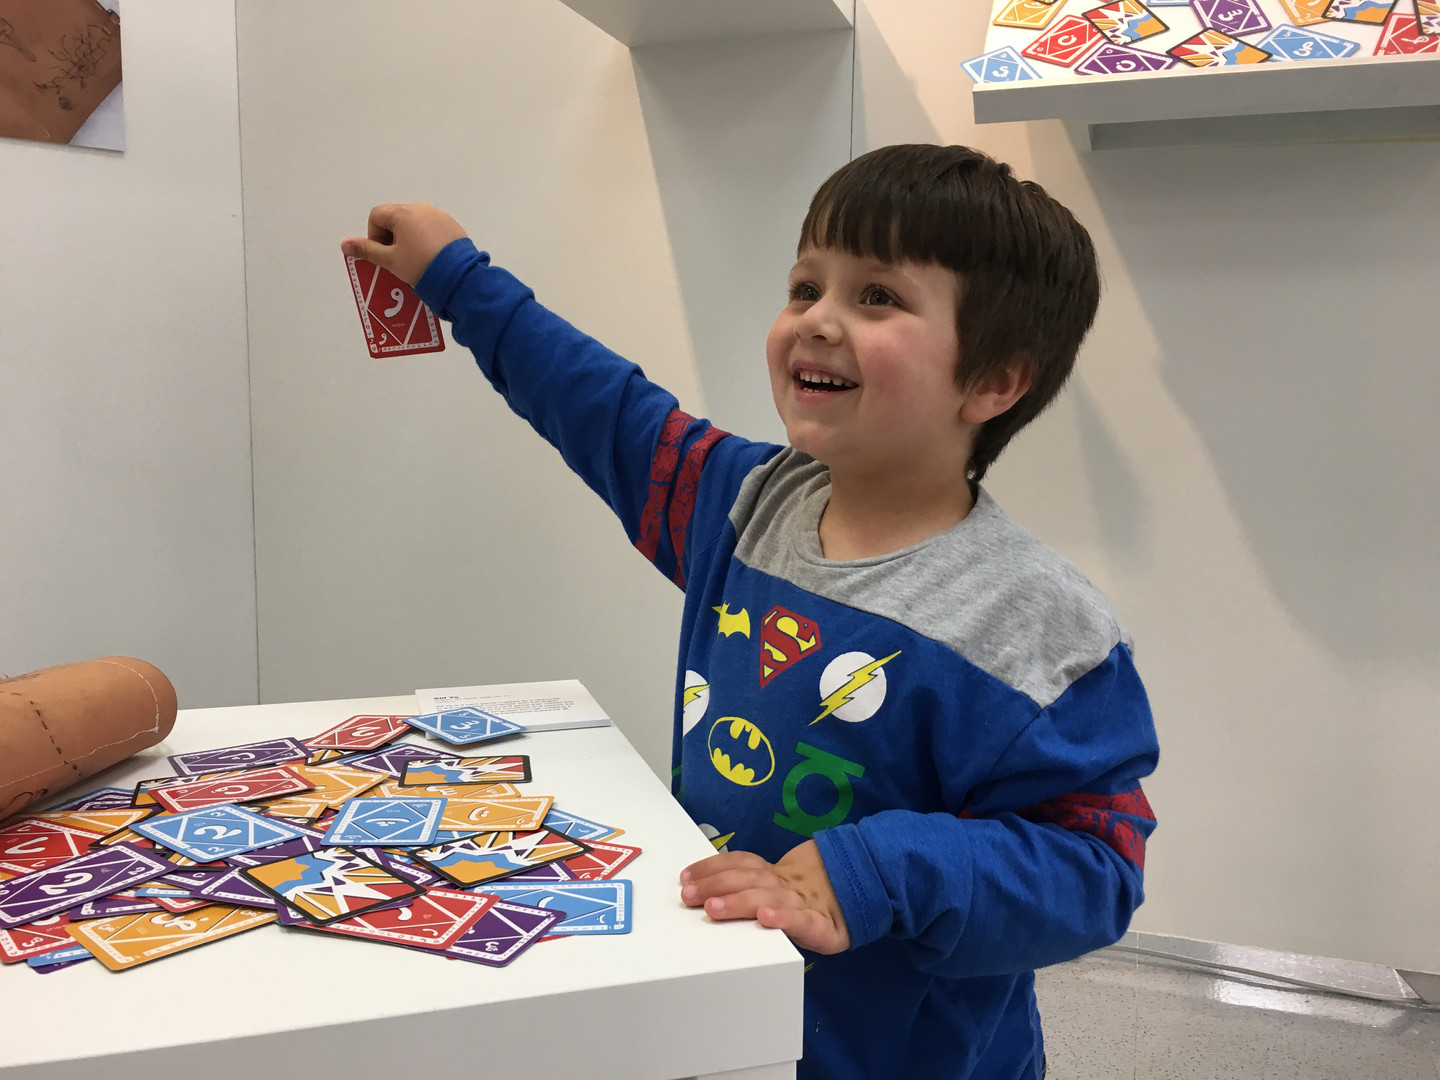 Kid Holding Card Game